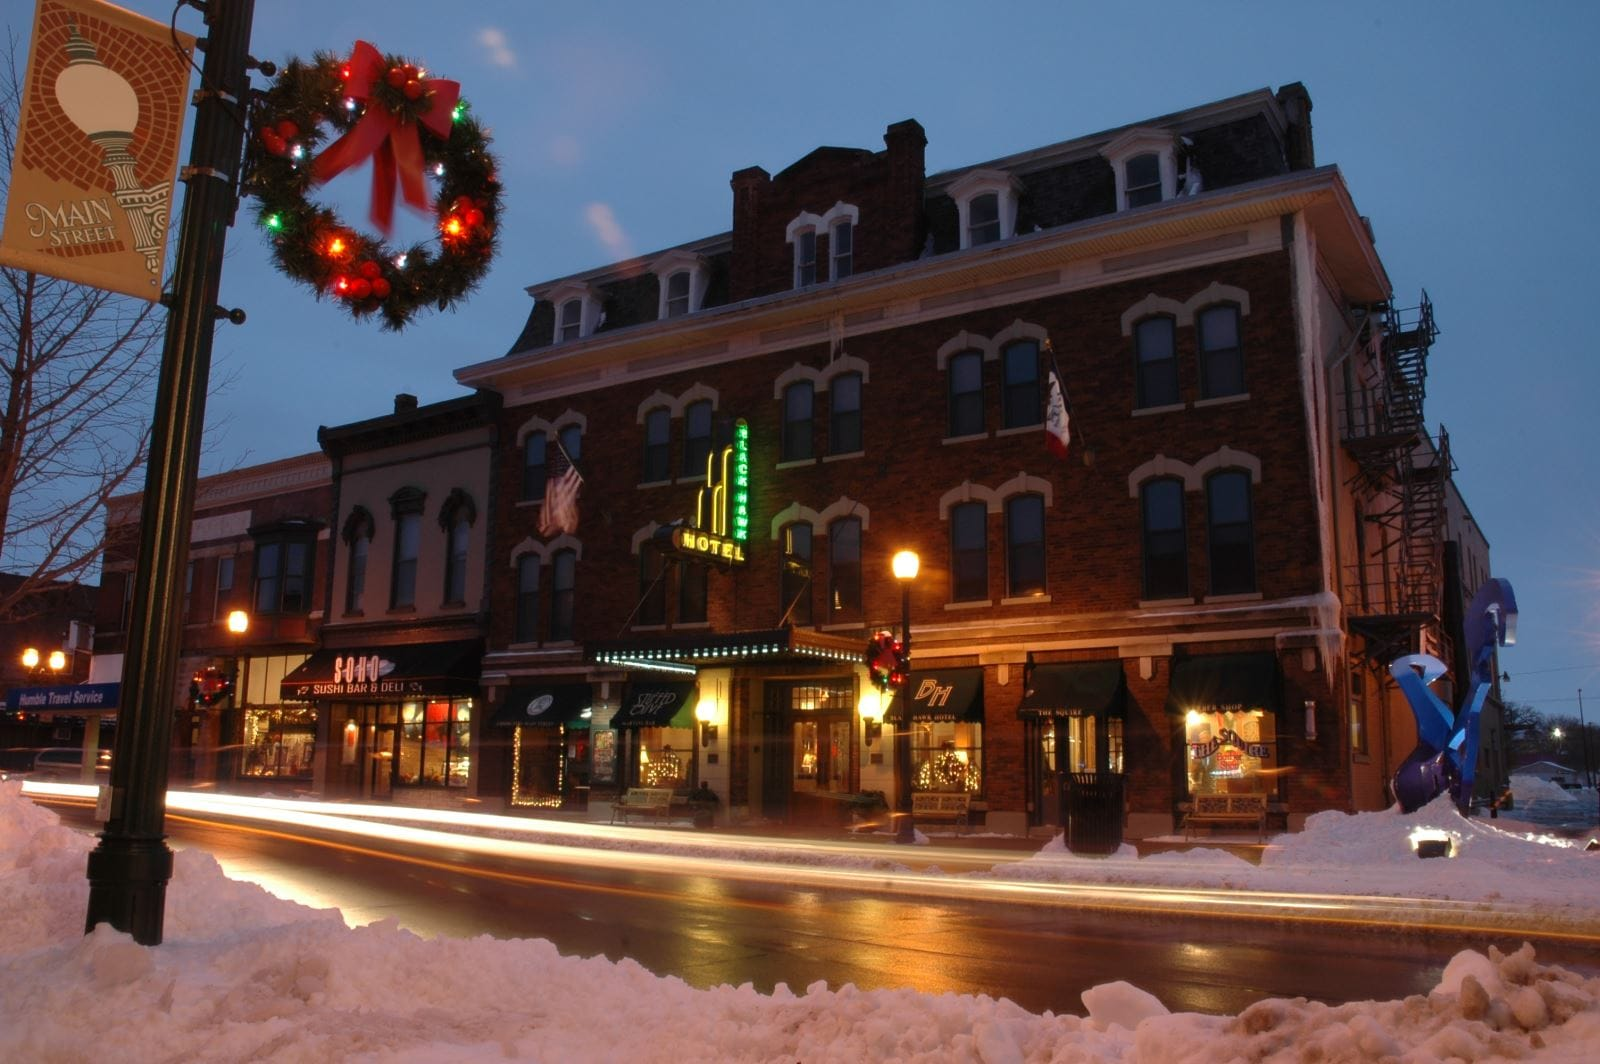 Blackhawk Hotel holidays | Downtown Cedar Falls, Iowa